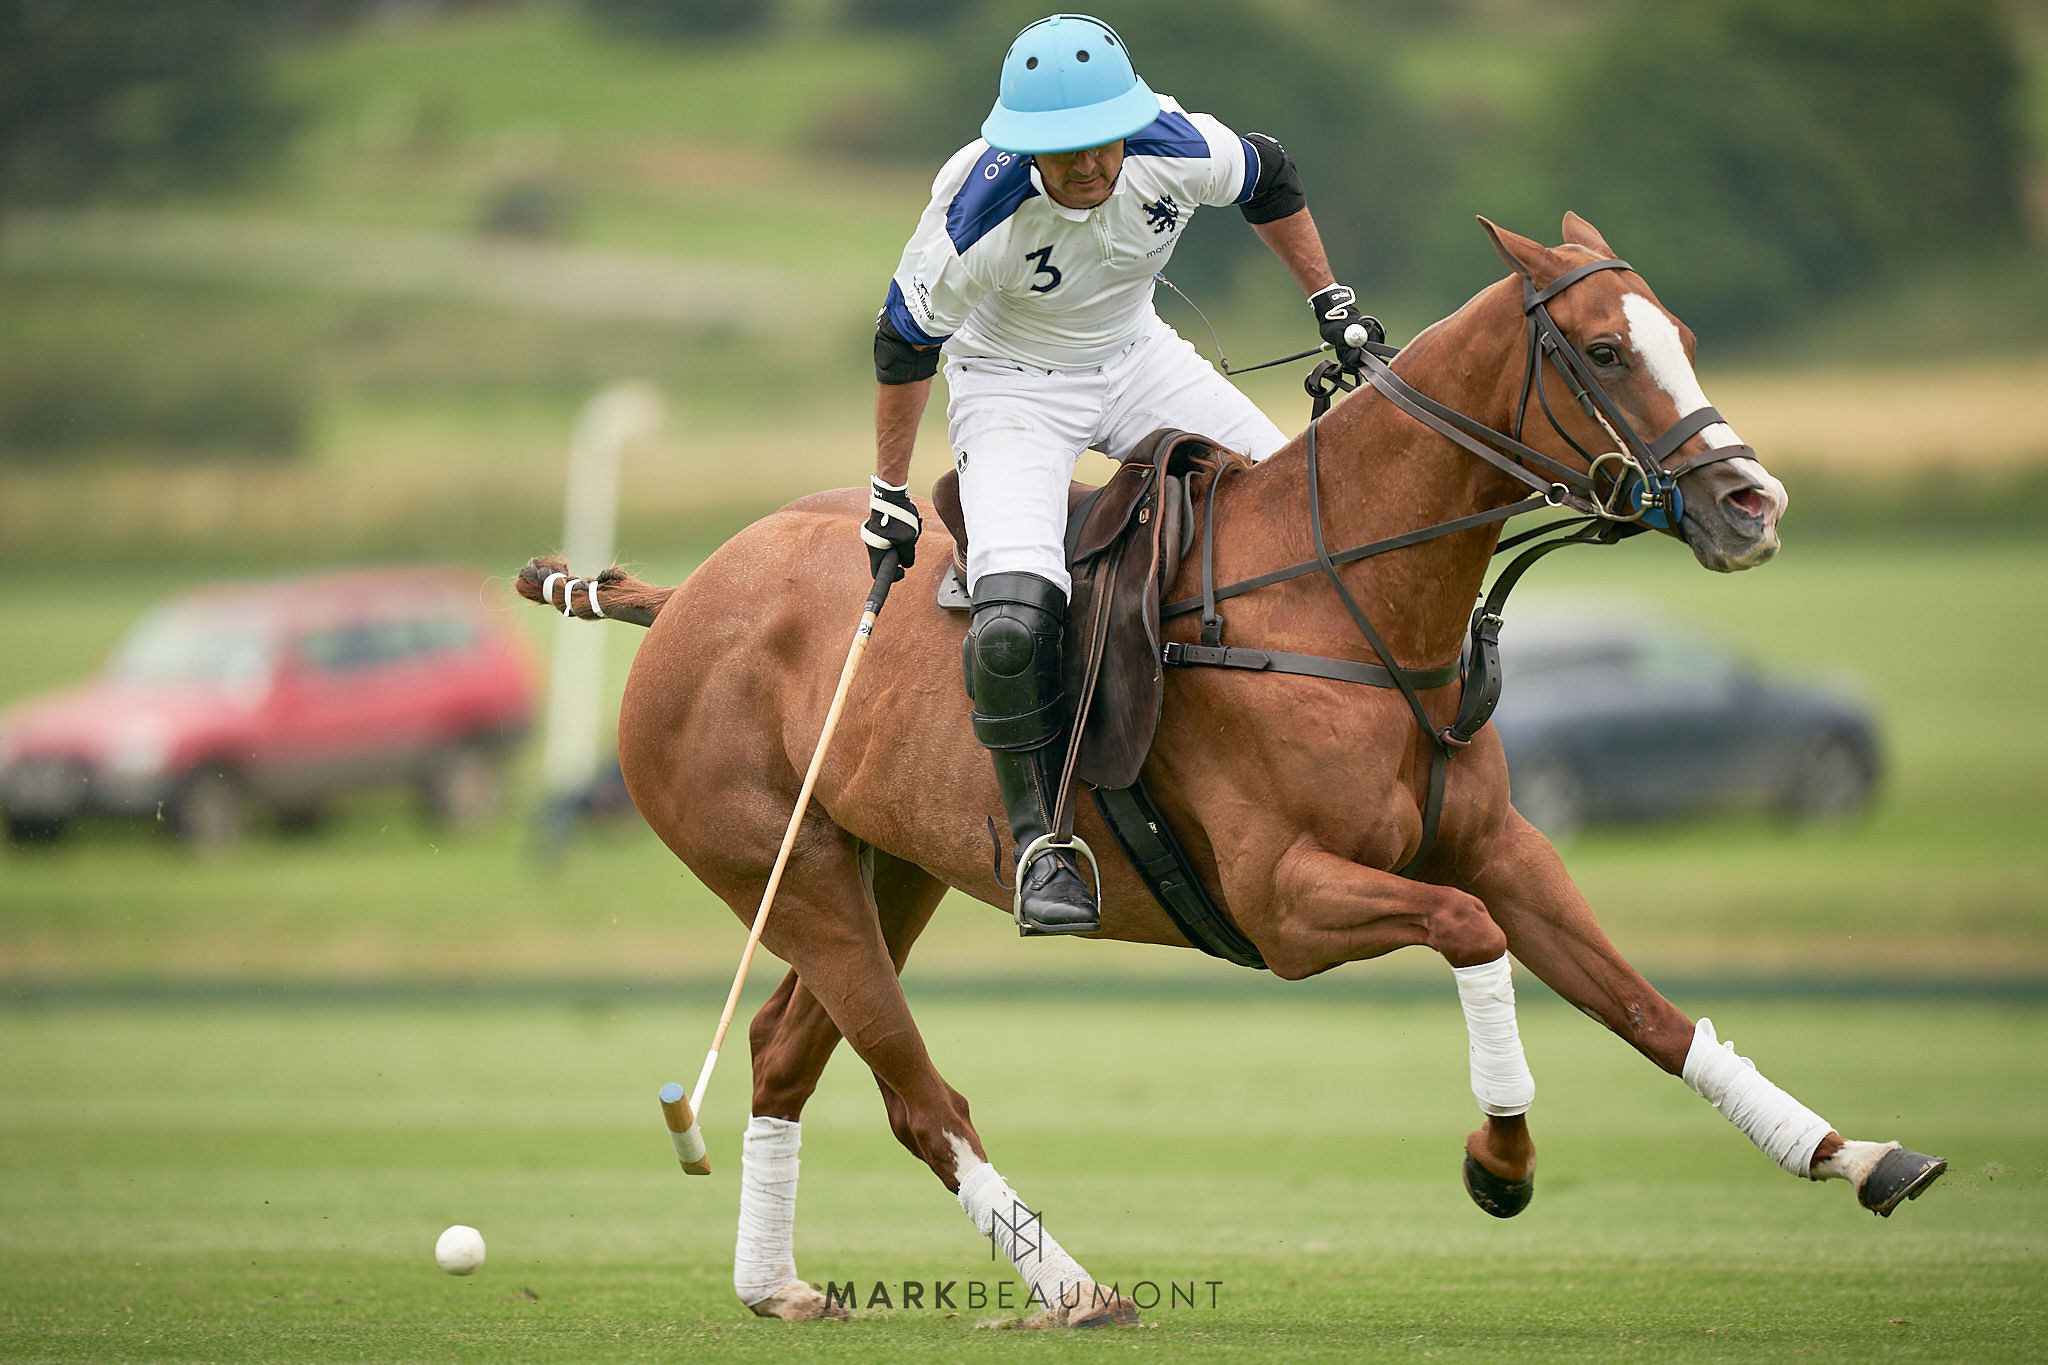 British Open Polo Championship Gold Cup Day 2